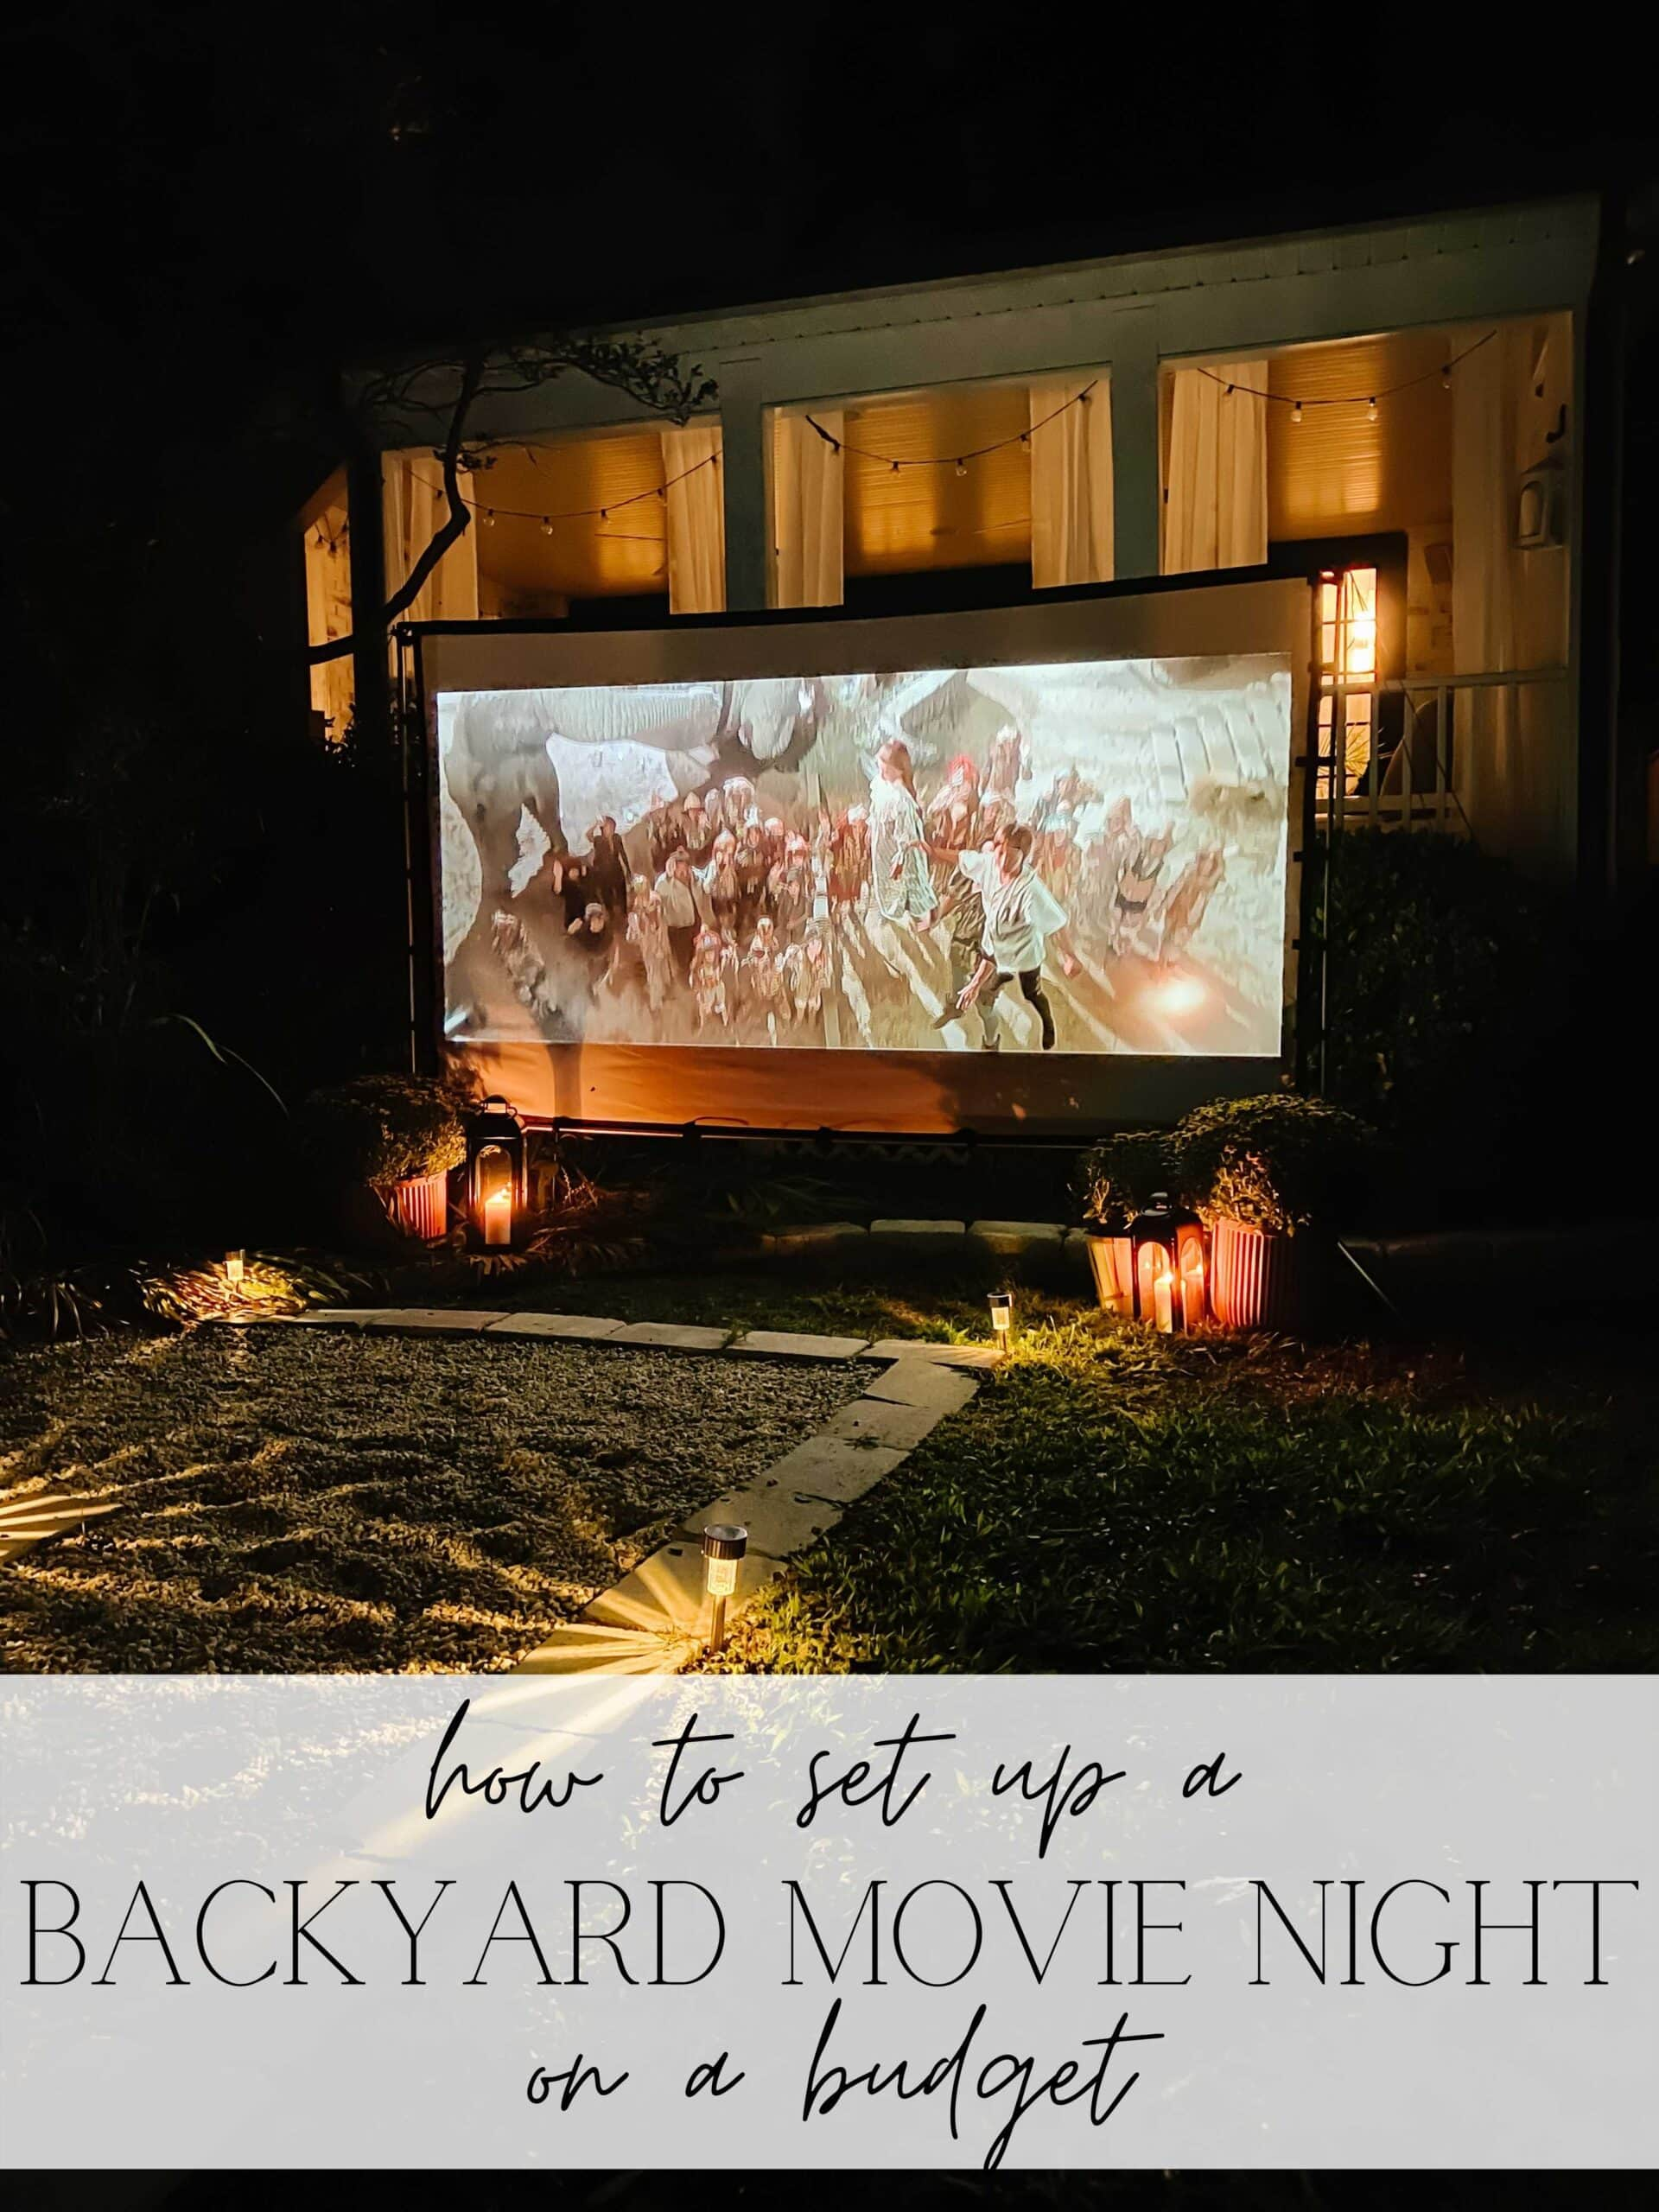 The best outdoor projector screen, movie projector, and streaming device to set up a backyard movie night for less than $400.